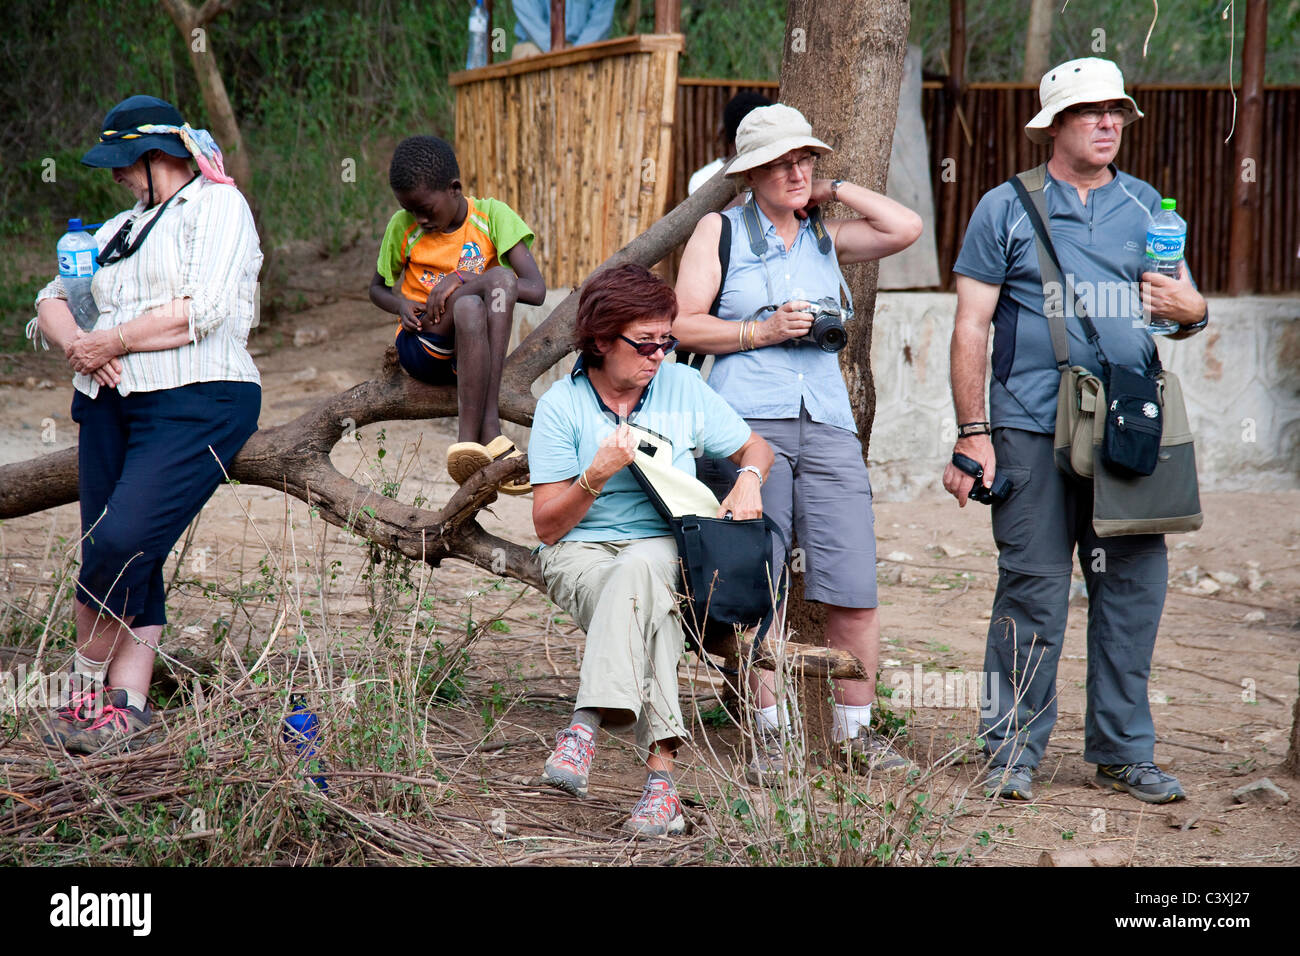 Group of tourists with camera at bull jumping ceremony, Turmi, Ethiopia, Africa - Stock Image